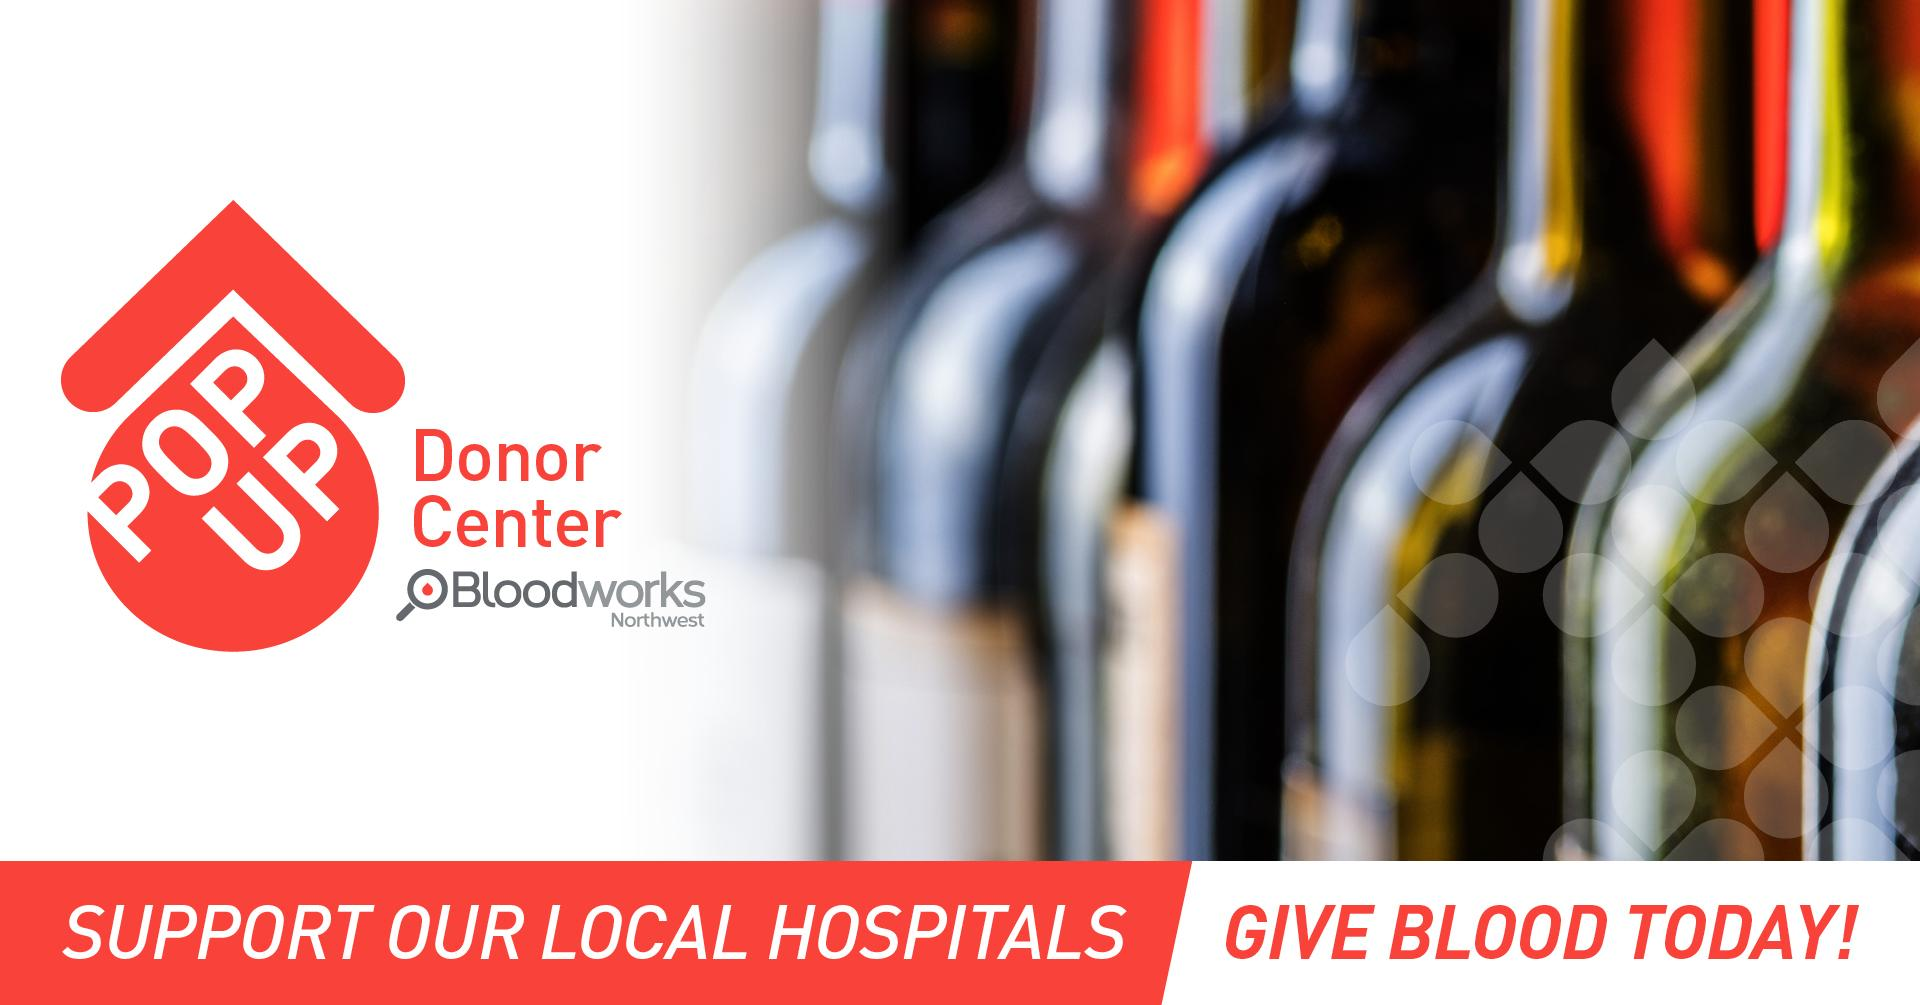 Wineries FB Event 1920x1005 - Chateau Lill crushes the blood shortage in October